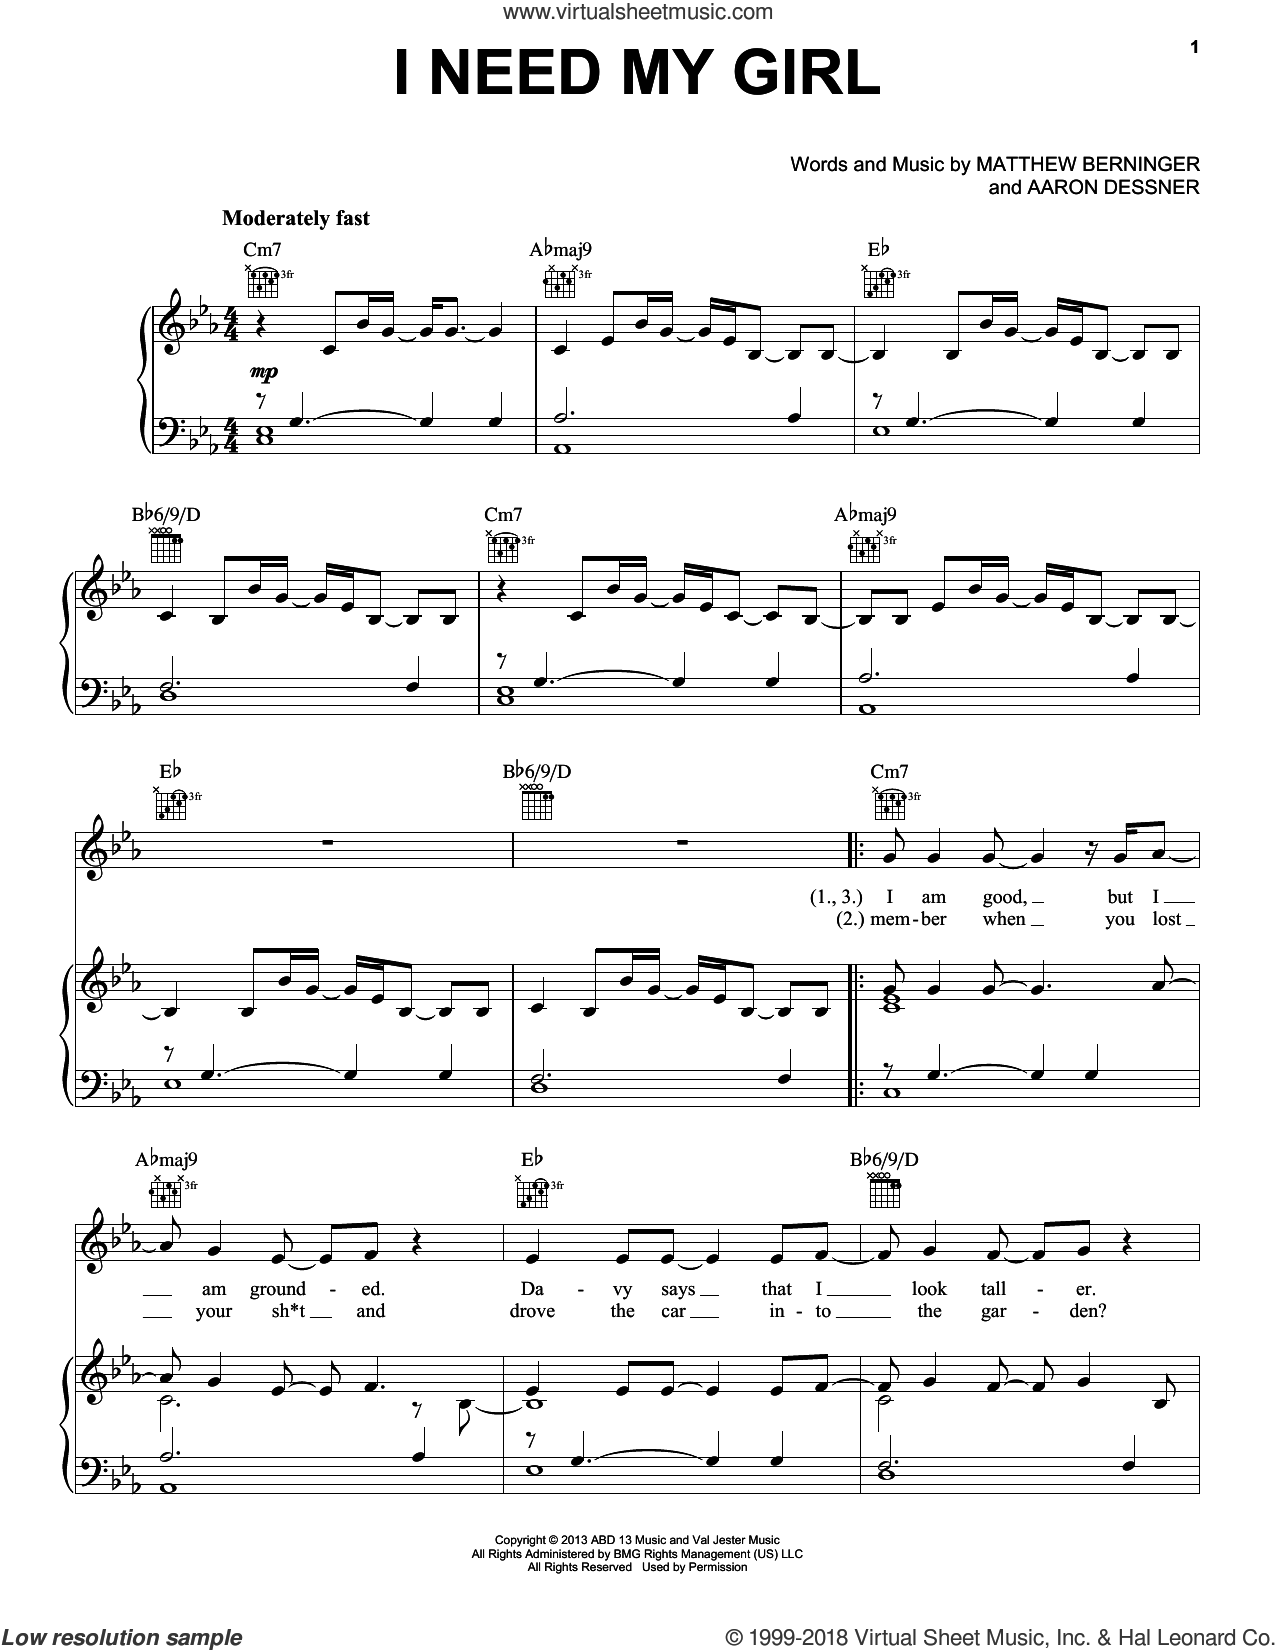 I Need My Girl sheet music for voice, piano or guitar by The National, Aaron Dessner and Matthew Berninger, intermediate skill level